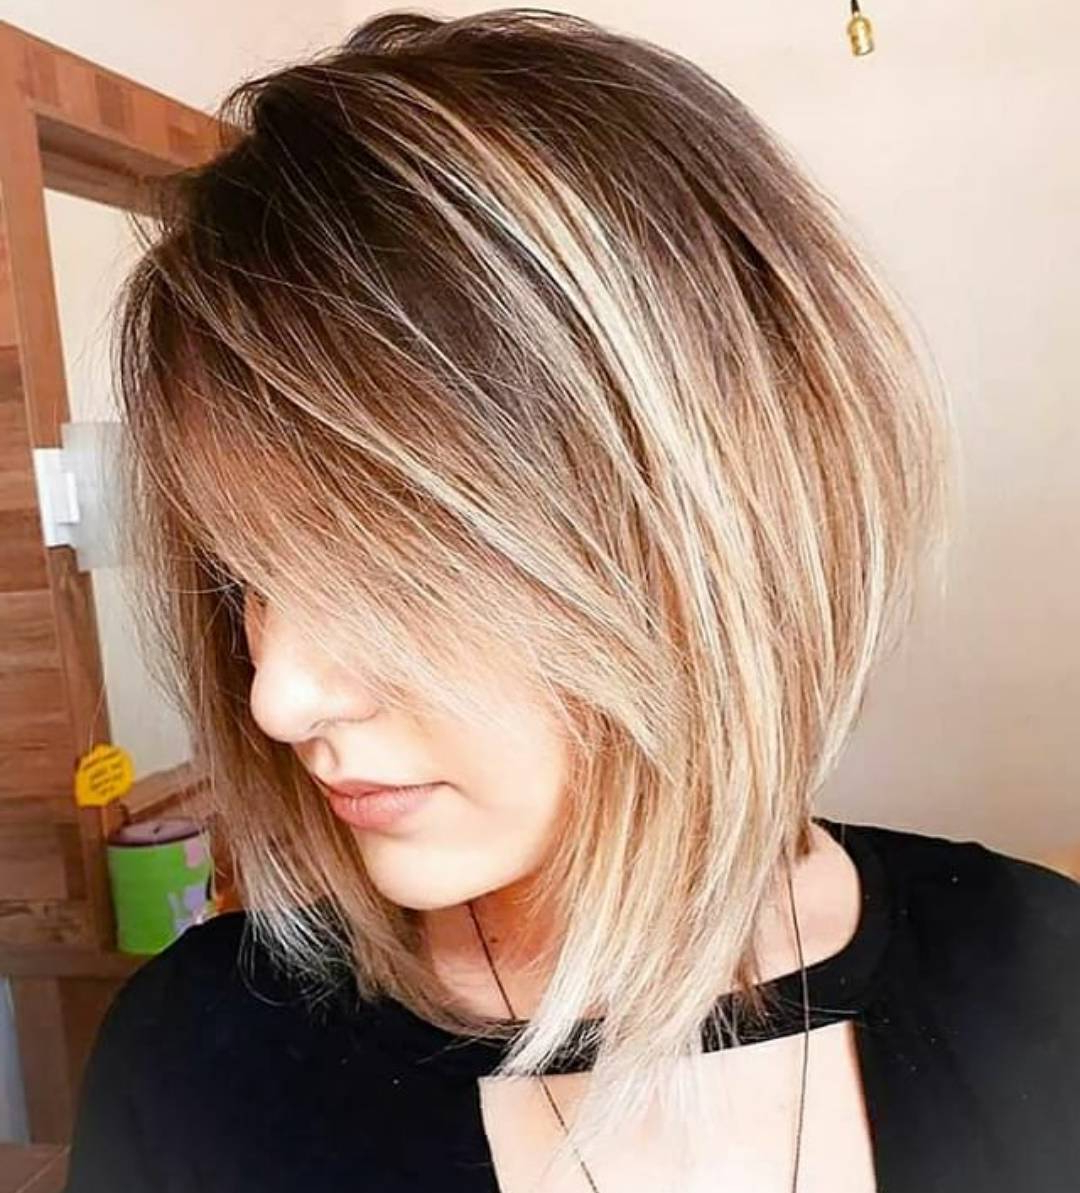 Widely Used Layered Copper Brown Haircuts For Thick Hair Intended For 10 Hi Fashion Short Haircut For Thick Hair Ideas 2020 (Gallery 4 of 20)